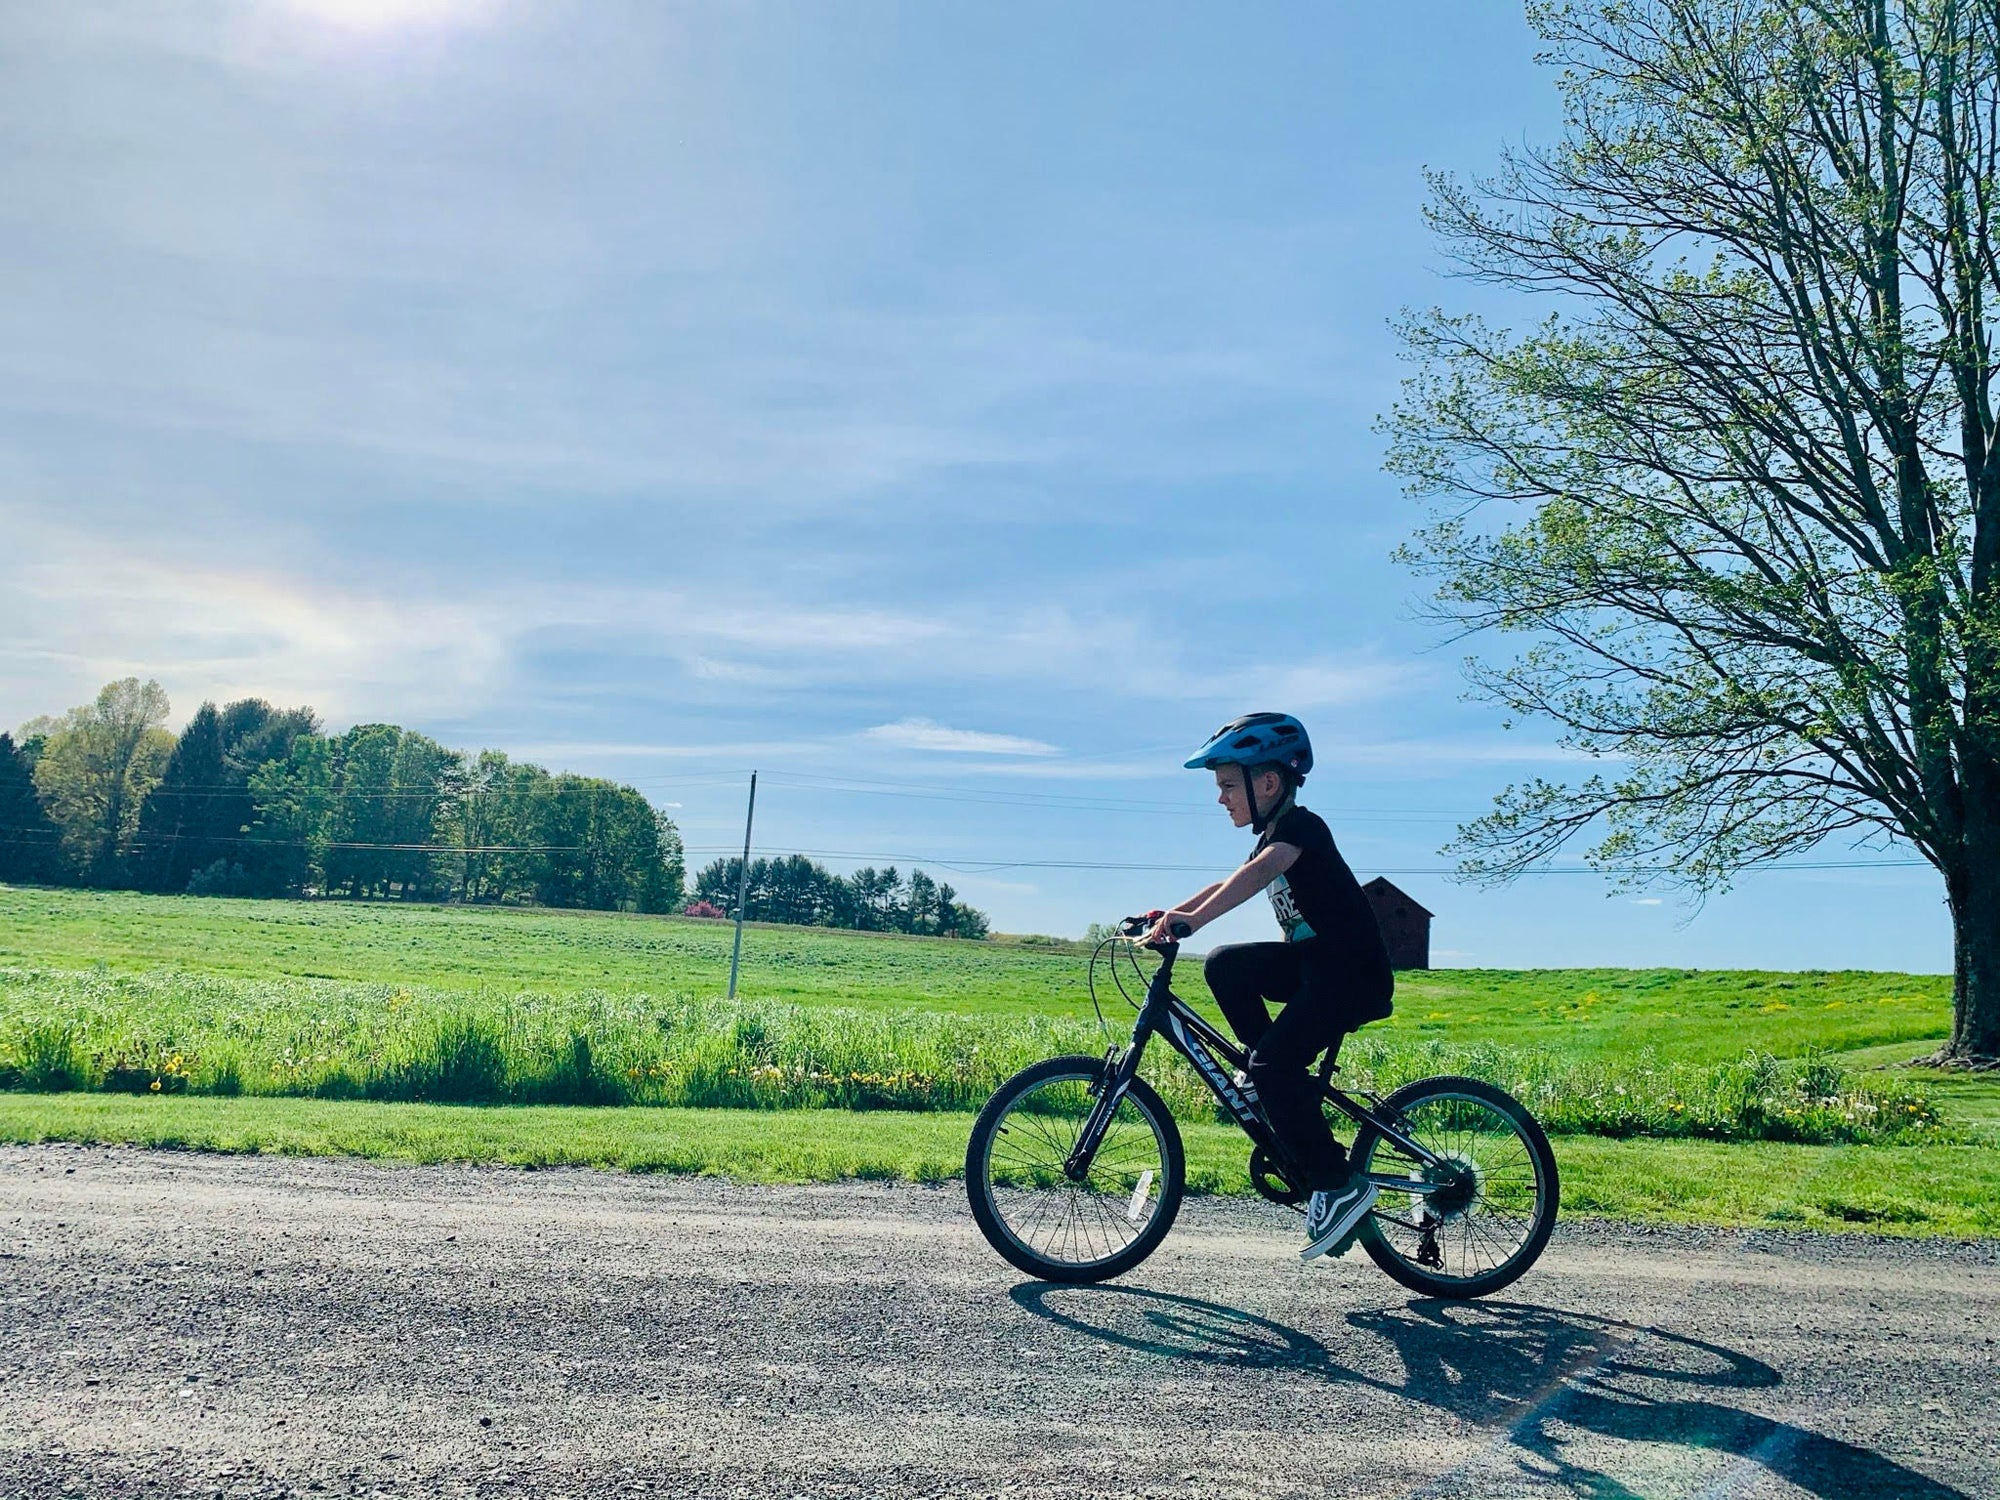 Young kid riding his bike with a Lazer kids helmet on a sunny day